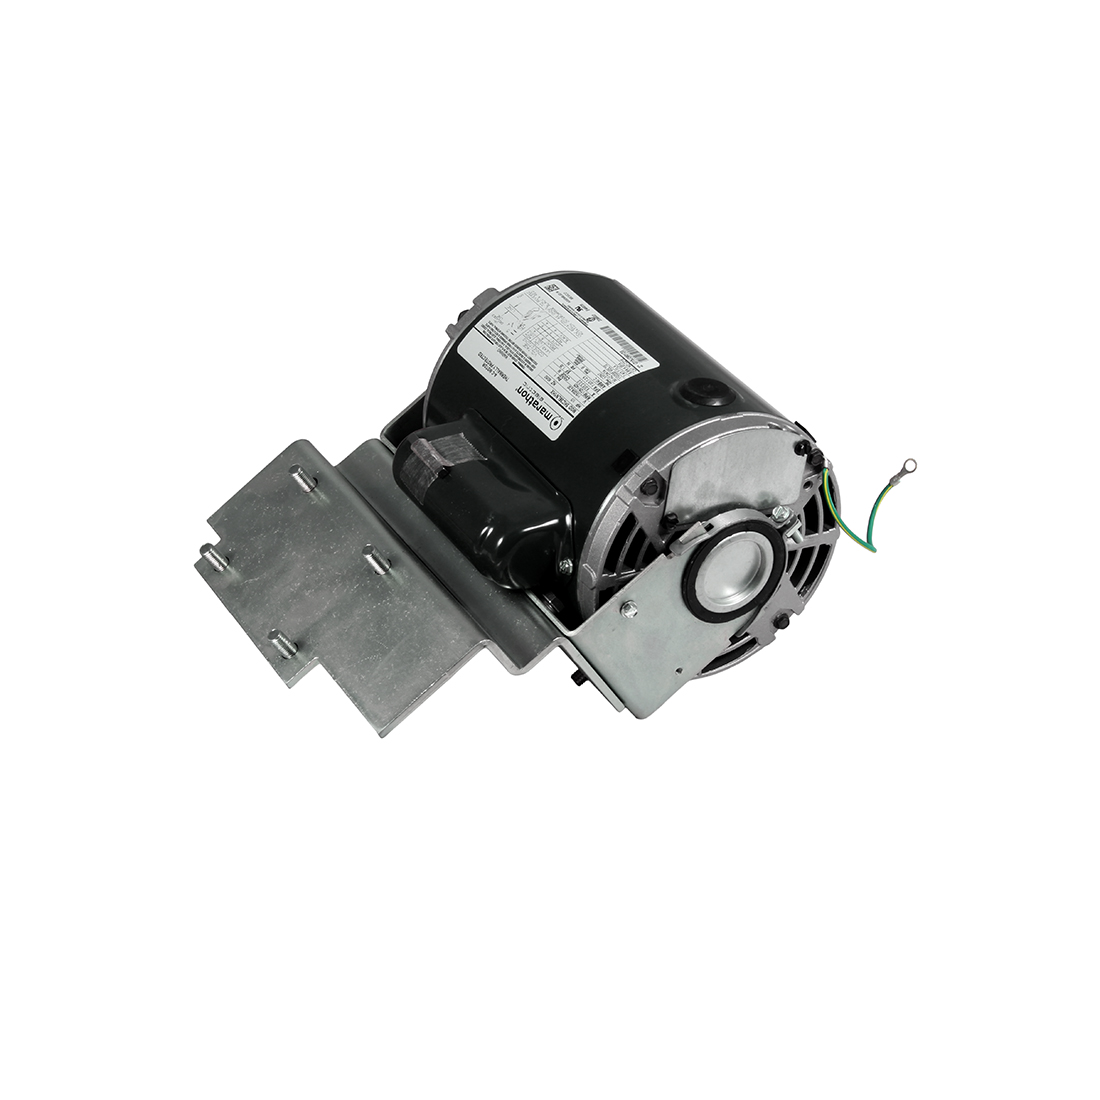 Kenmore Food Processor Replacement Parts